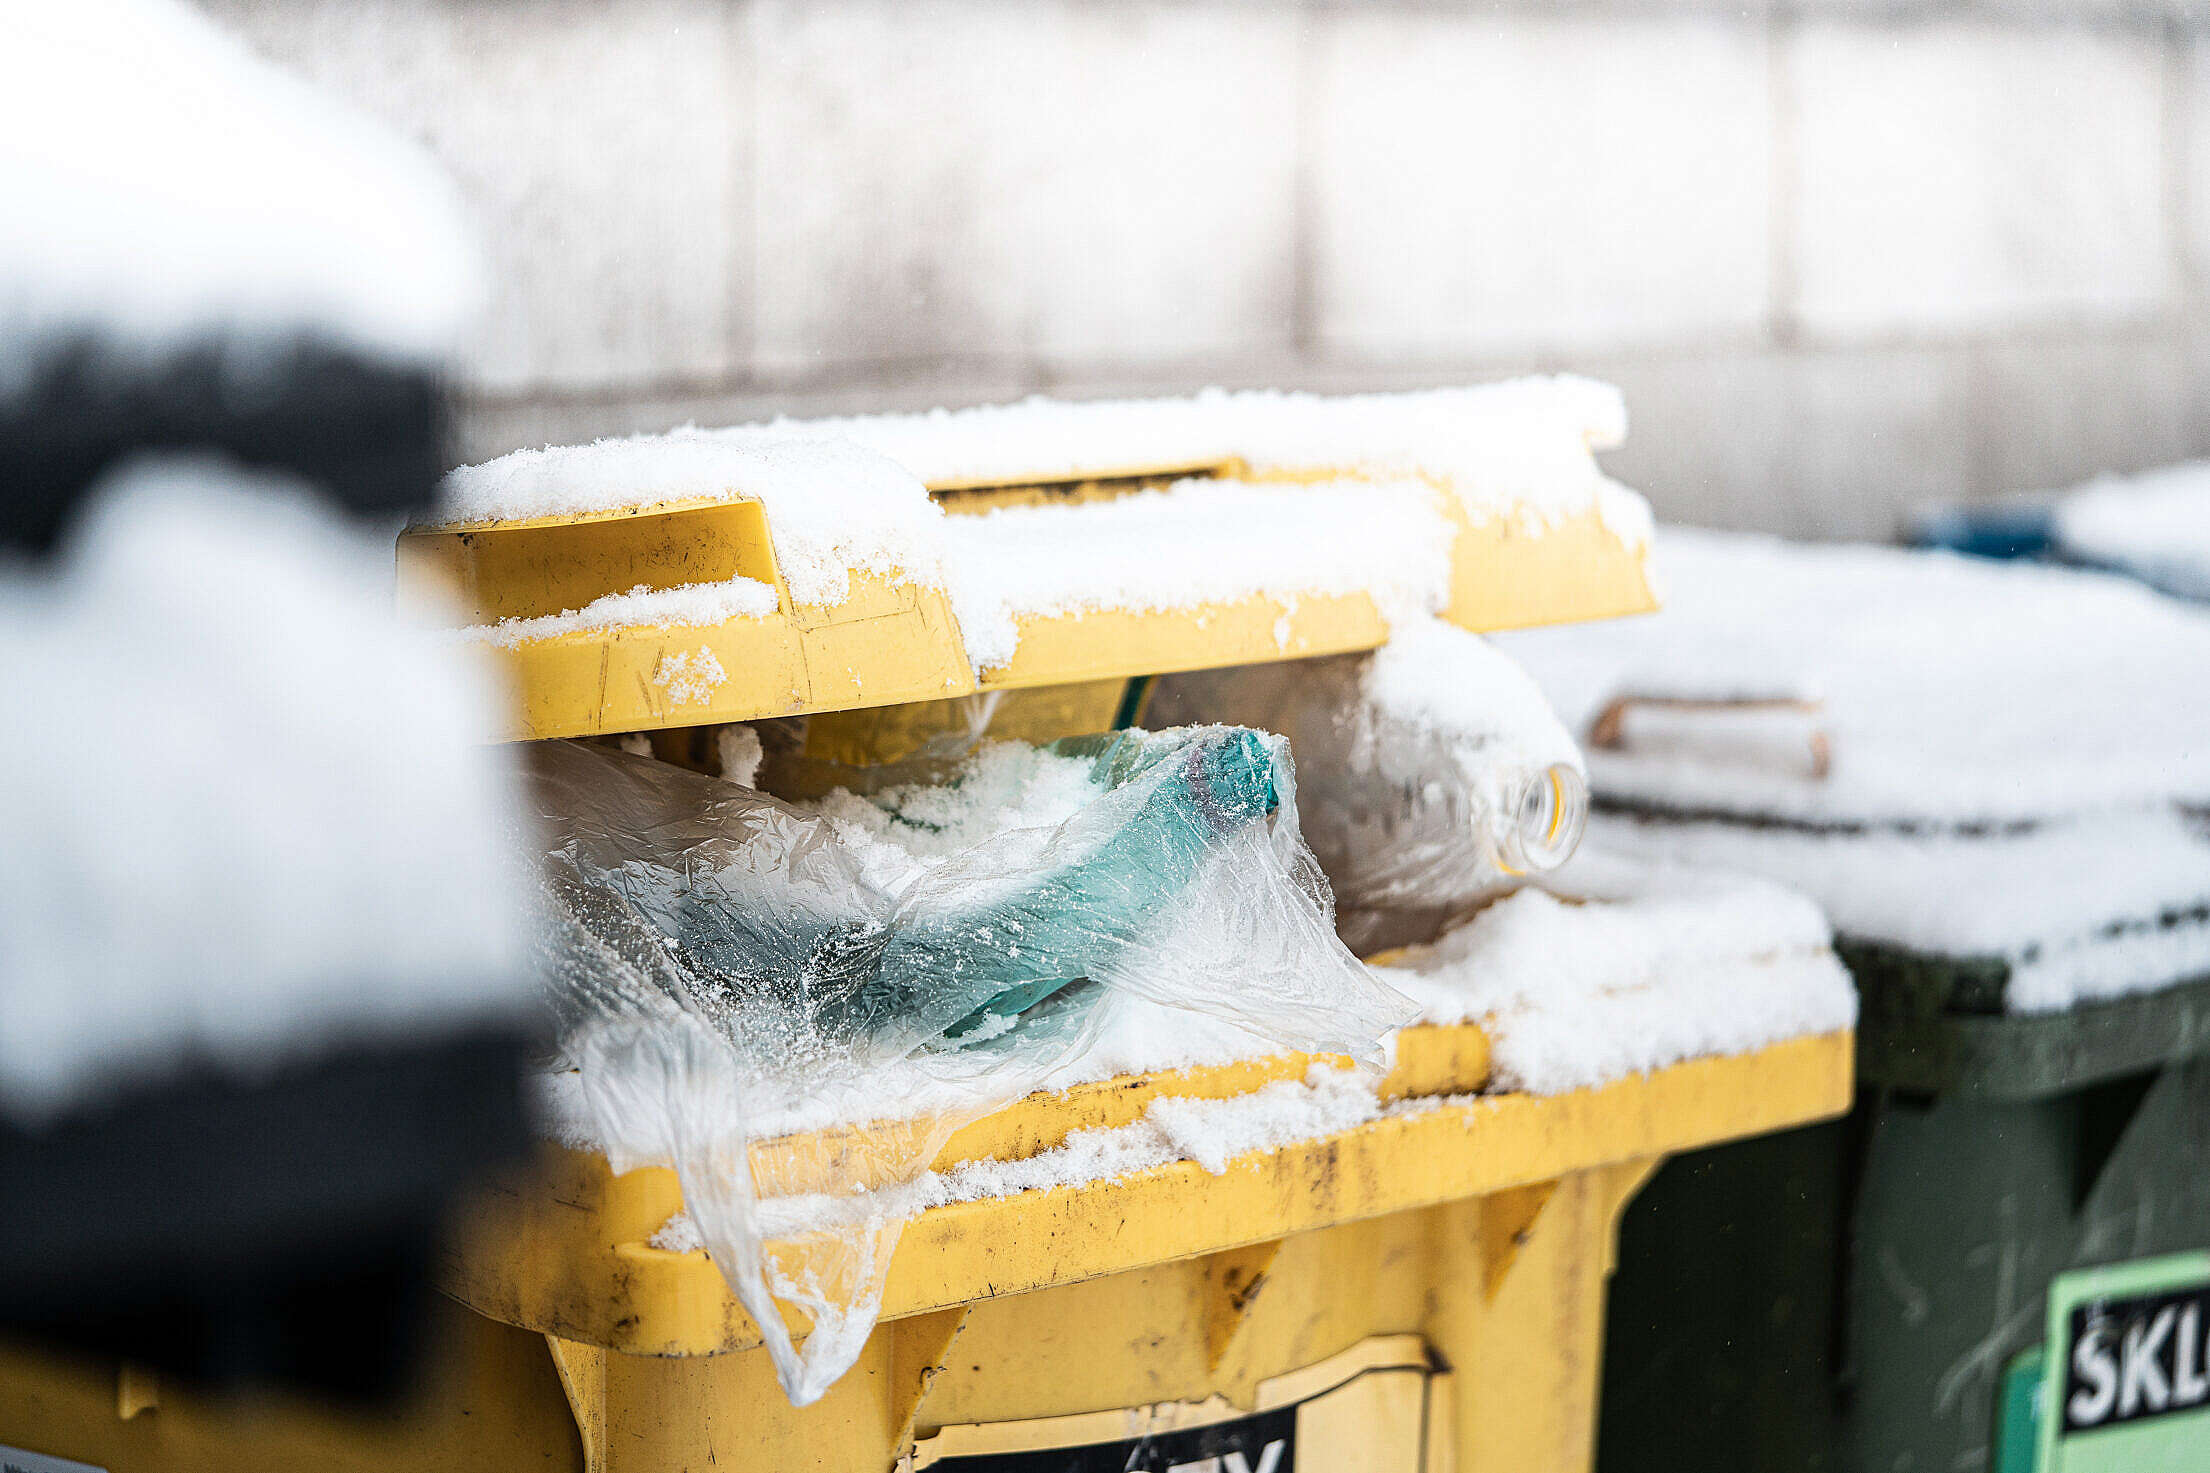 Full Garbage Can for Plastics Free Stock Photo